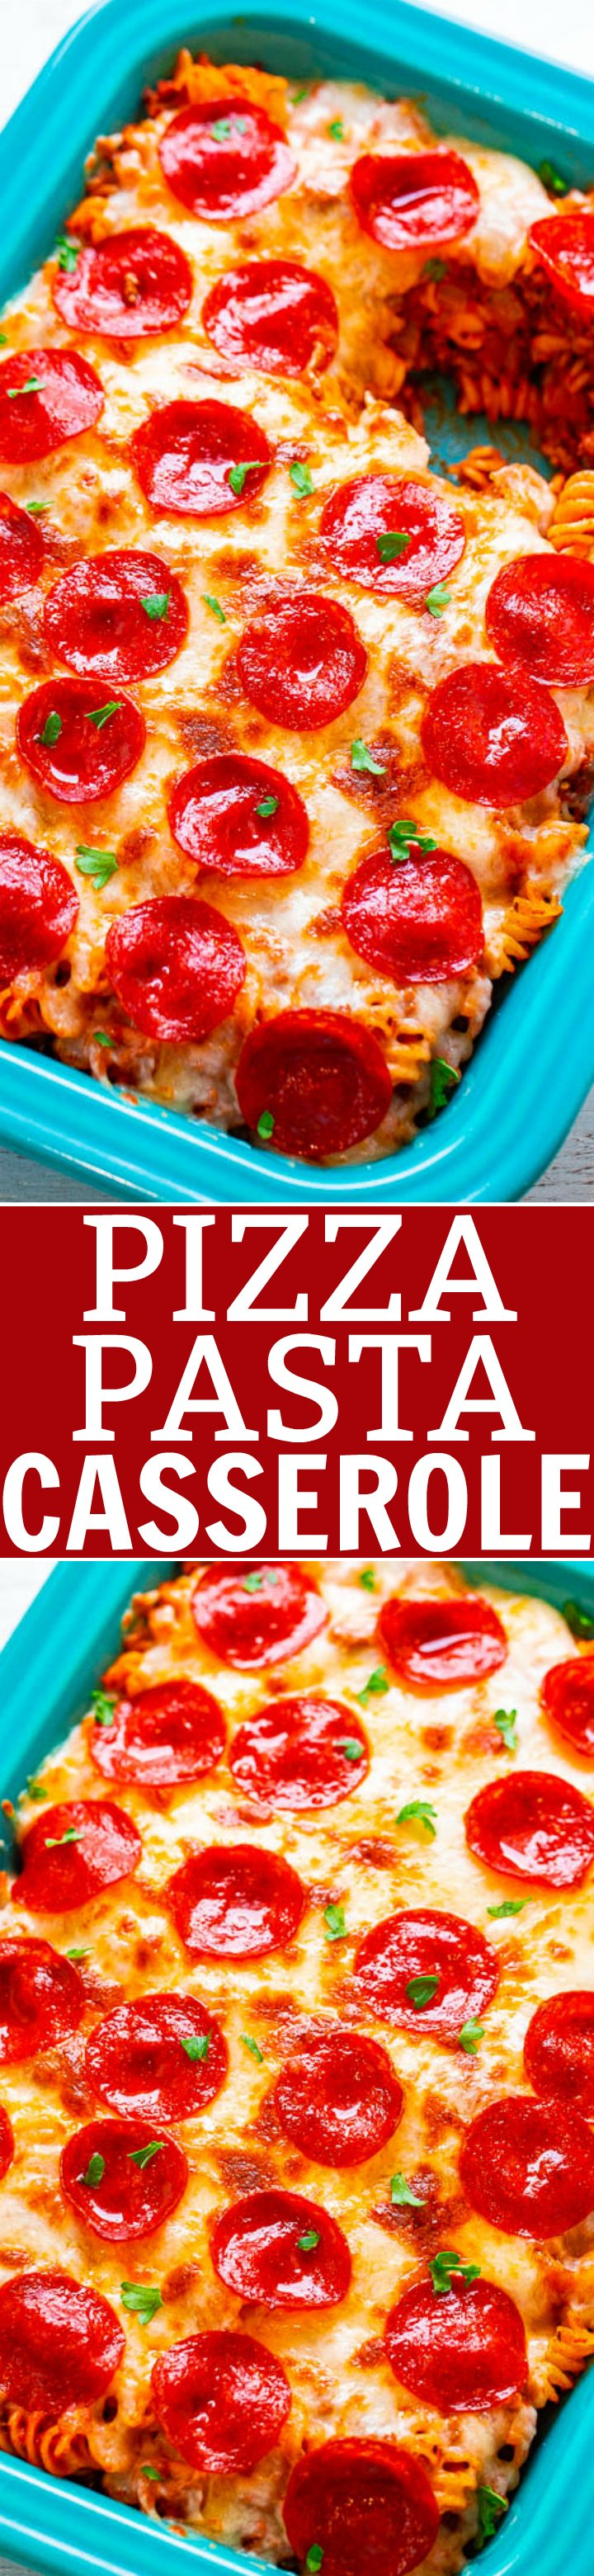 Pepperoni Pizza Casserole — EASY, ready in 20 minutes, and for times when you want BOTH pizza AND pasta!! Ground beef, pepperoni, and oodles of cheese make this pizza casserole pure COMFORT FOOD! Feeds a crowd!!